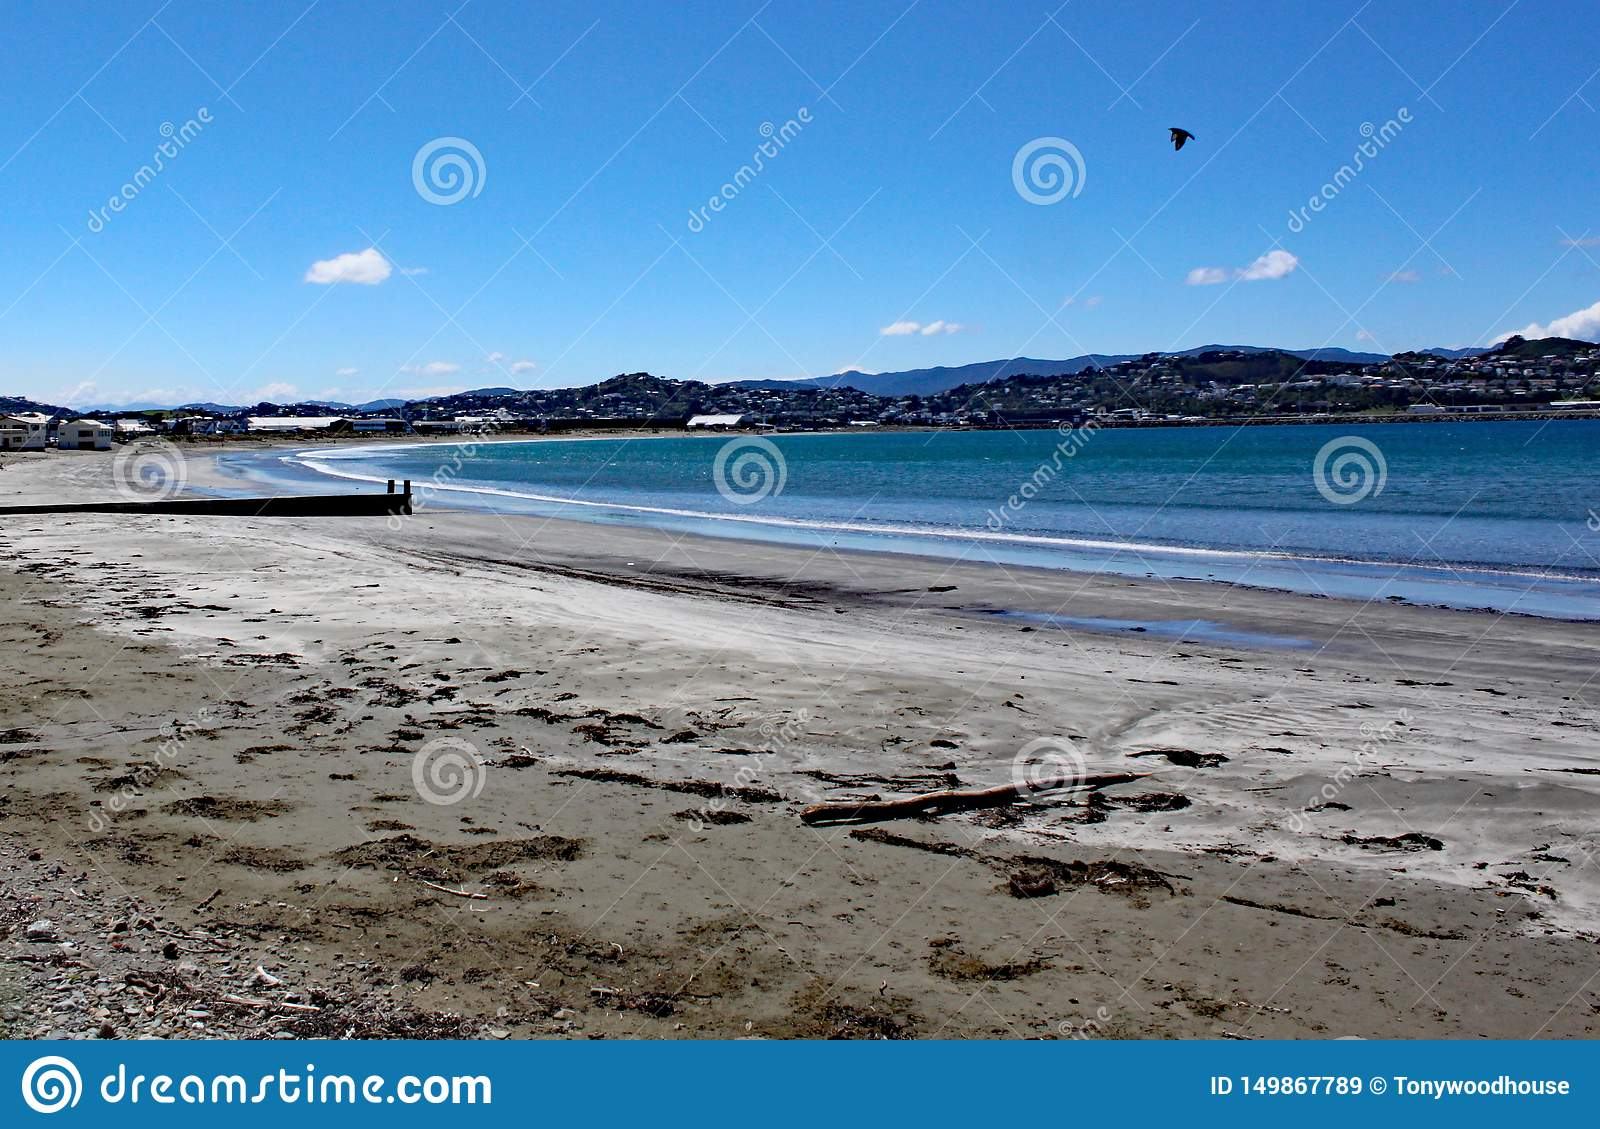 The sea laps gently on the sandy beach at Lyall Bay near Wellington in New Zealand